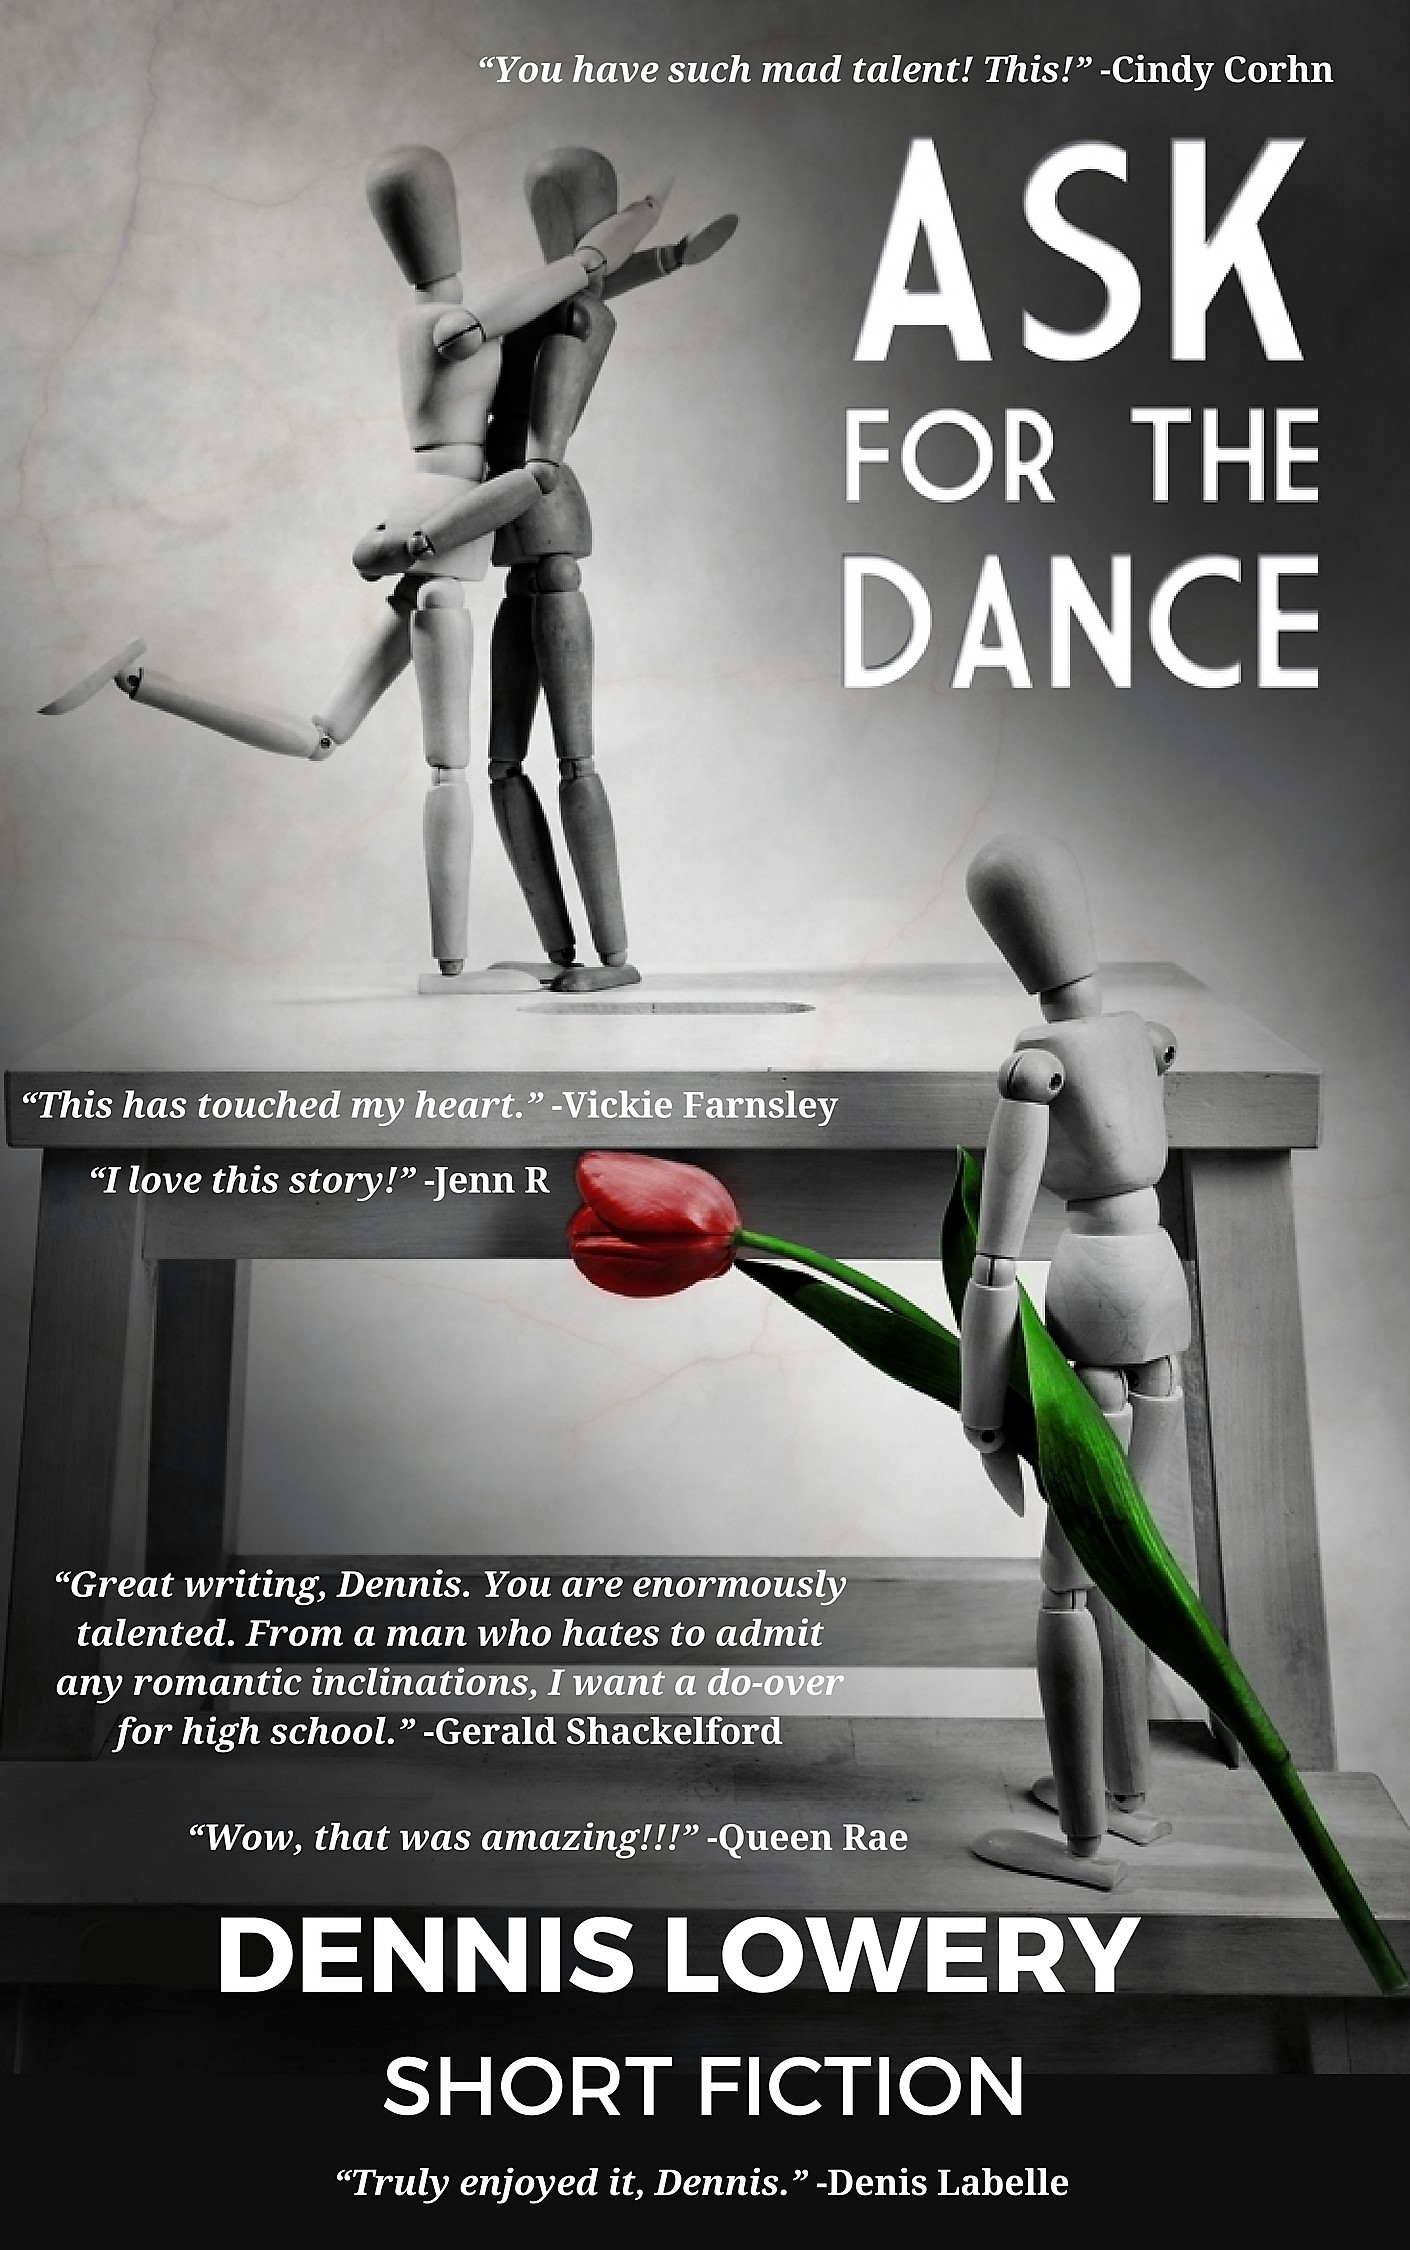 ASK FOR THE DANCE (commented) - A Short Story from Dennis Lowery